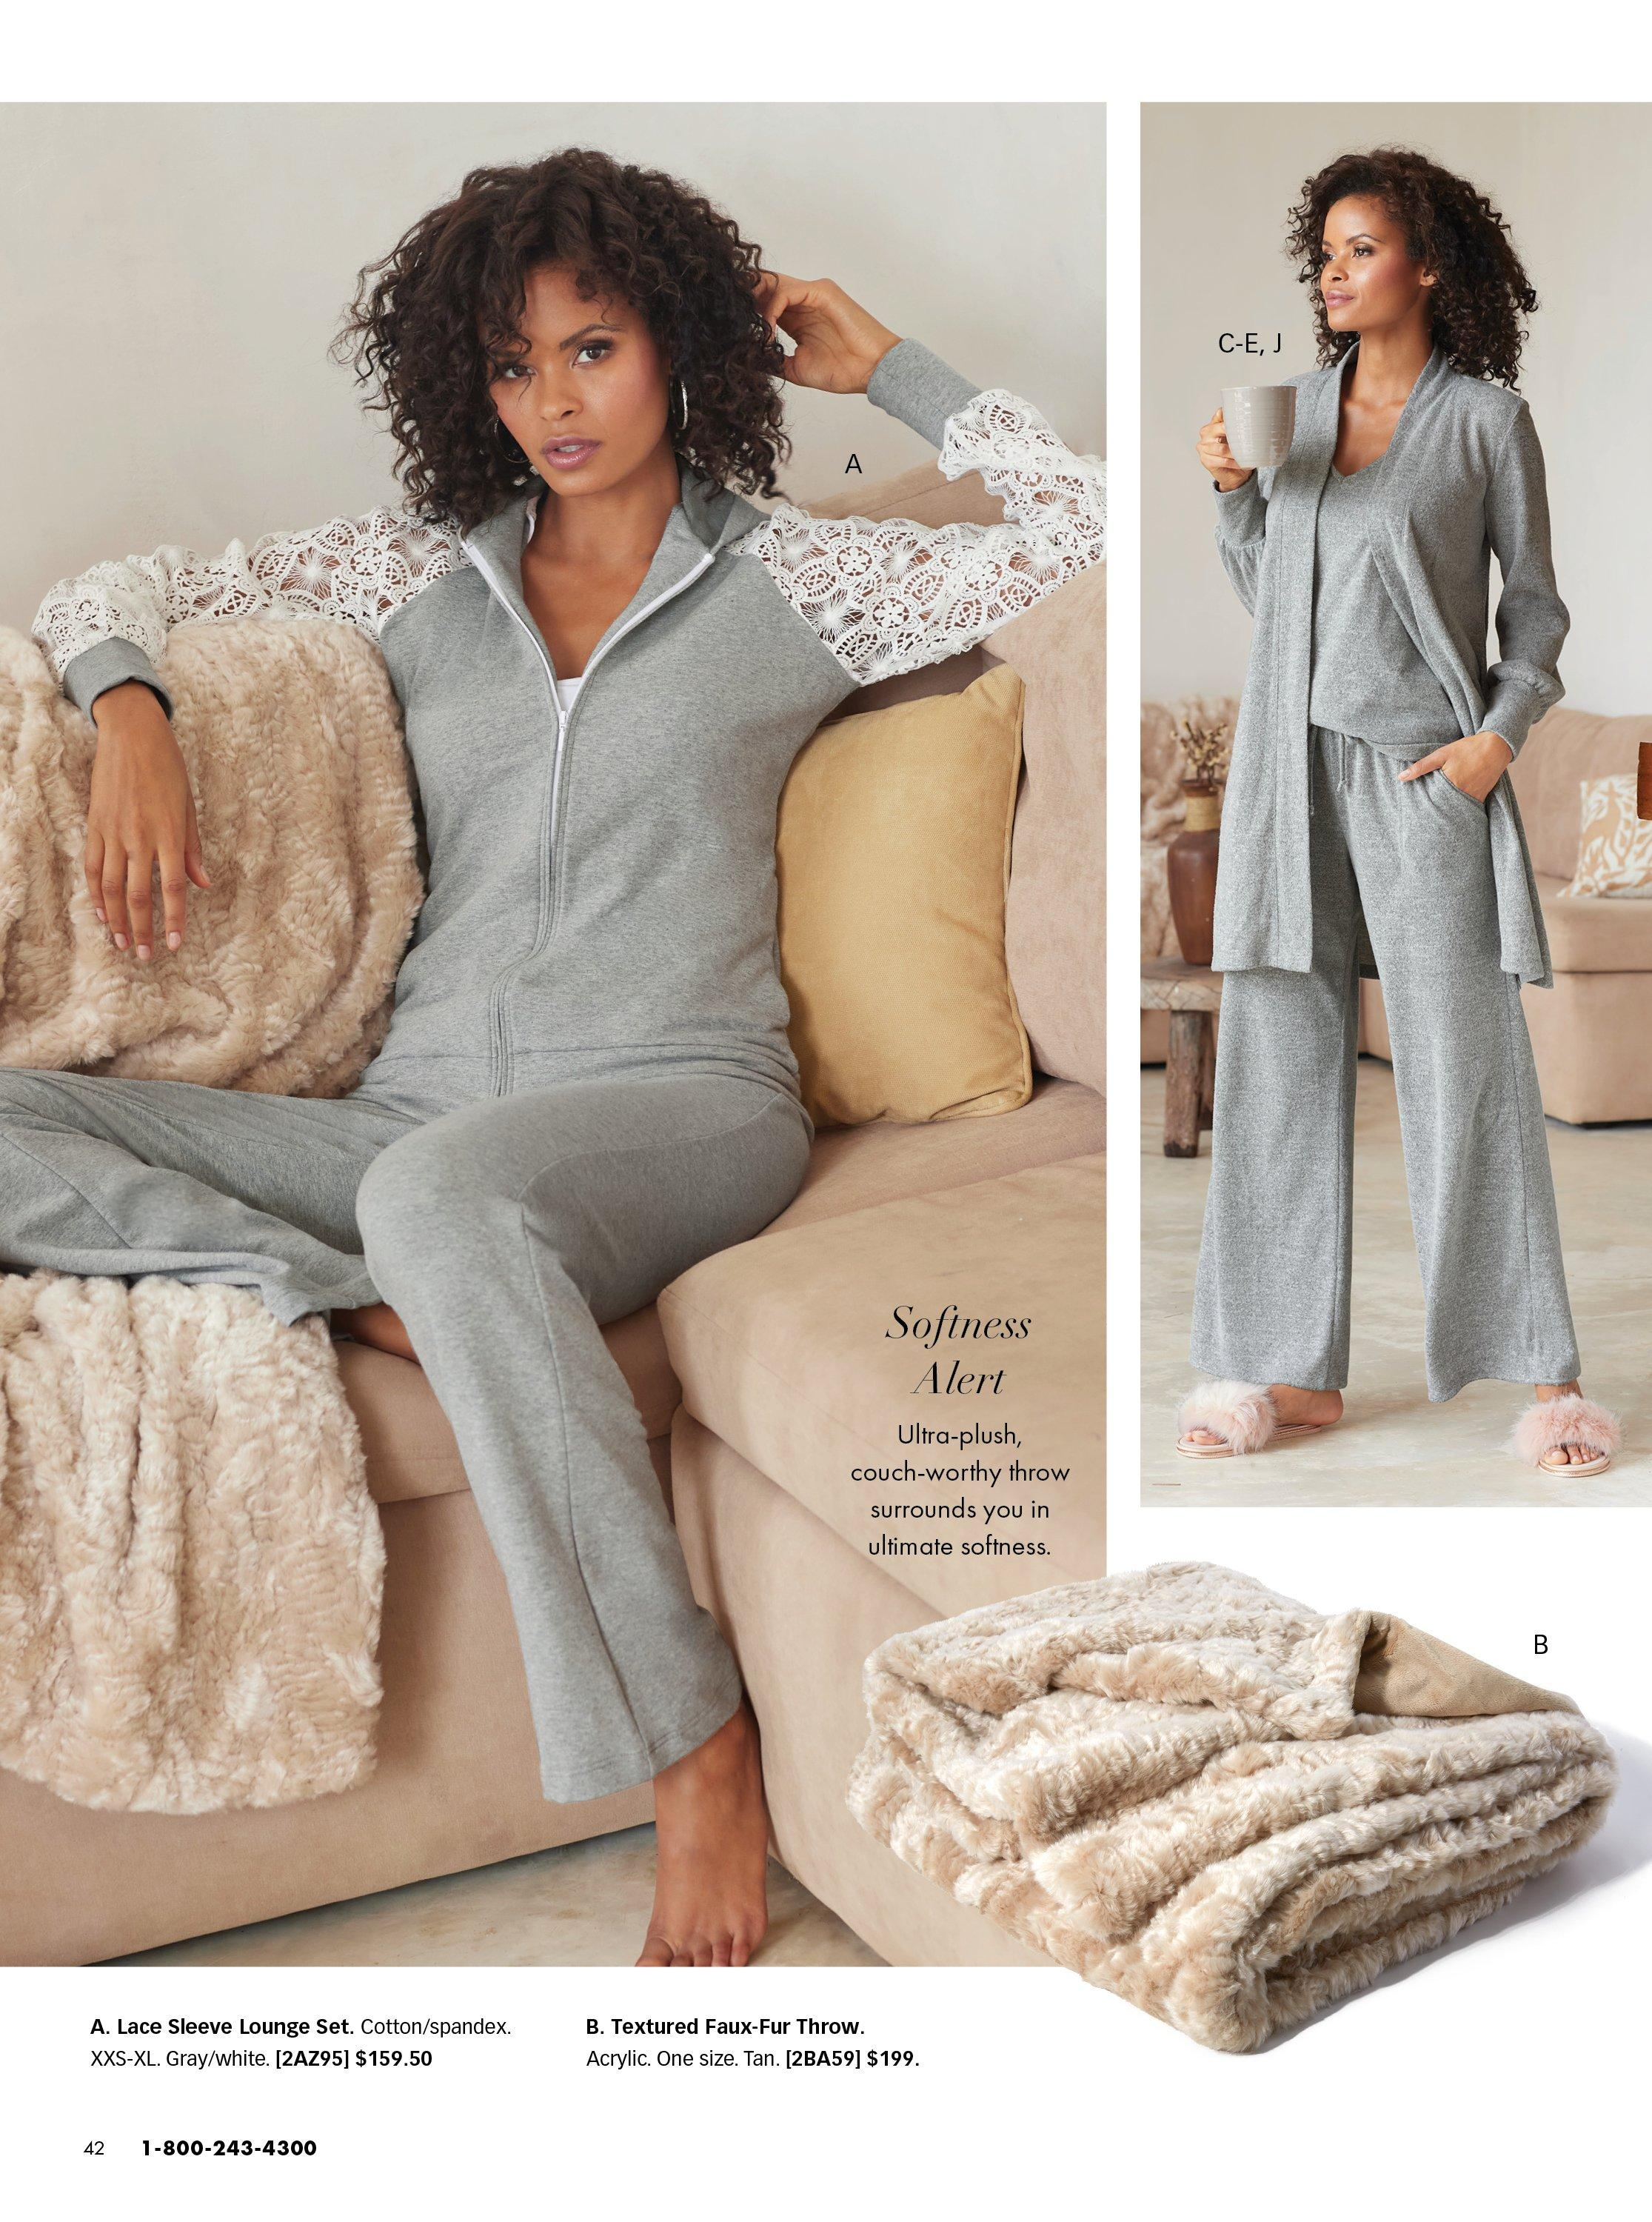 left model wearing a gray two-piece set with white lace sleeves. right model wearing gray duster, gray ribbed tank top, and gray sweatpants with faux fur slippers. also shown: oatmeal faux fur throw.